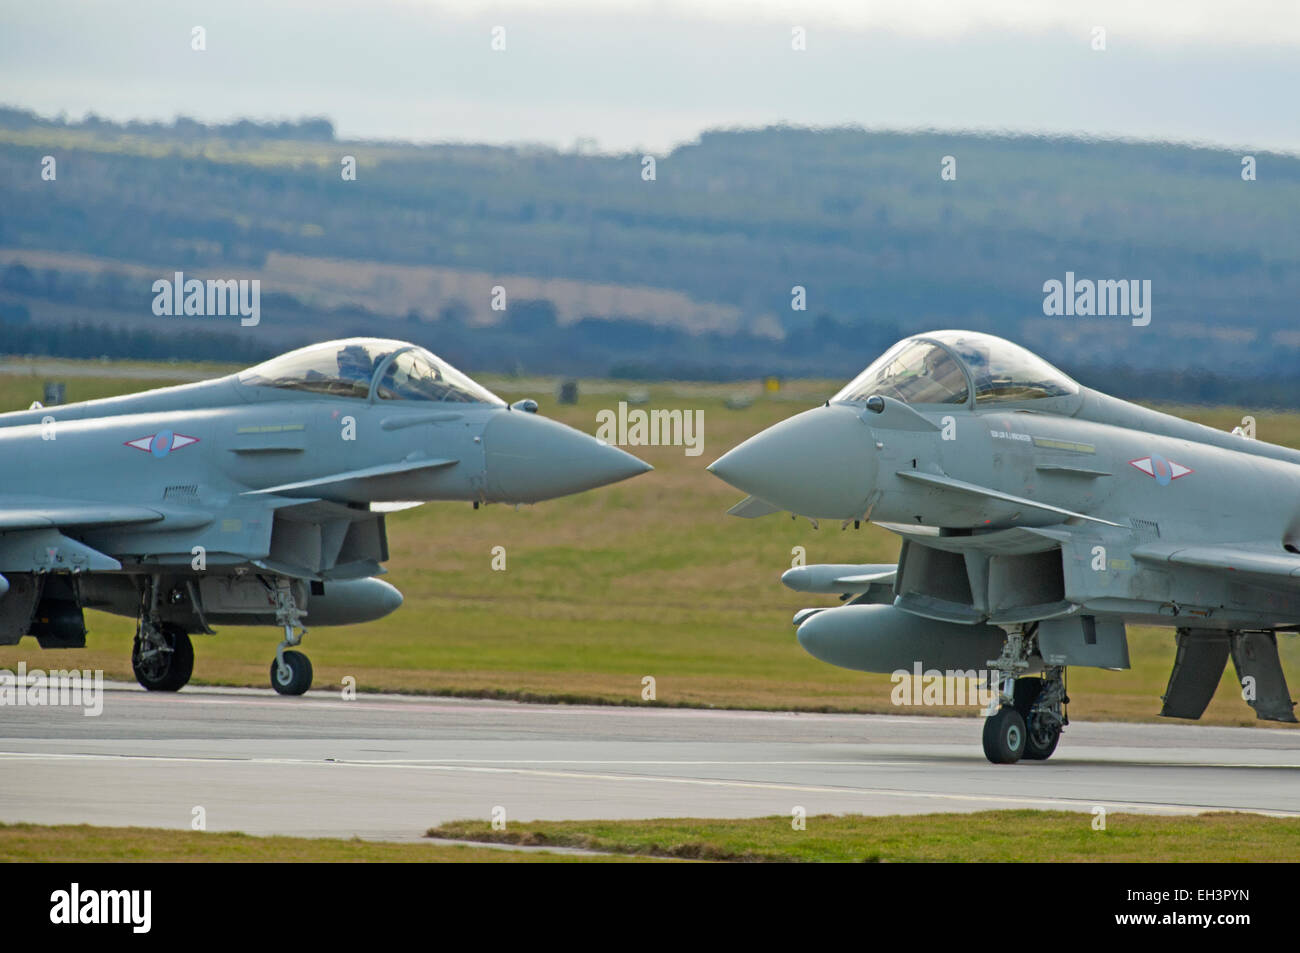 Nose to nose a pair of Eurofighter Typhoon FRG4s based at RAF Lossiemouth air station, Moray. Scotland.  SCO 9624. - Stock Image